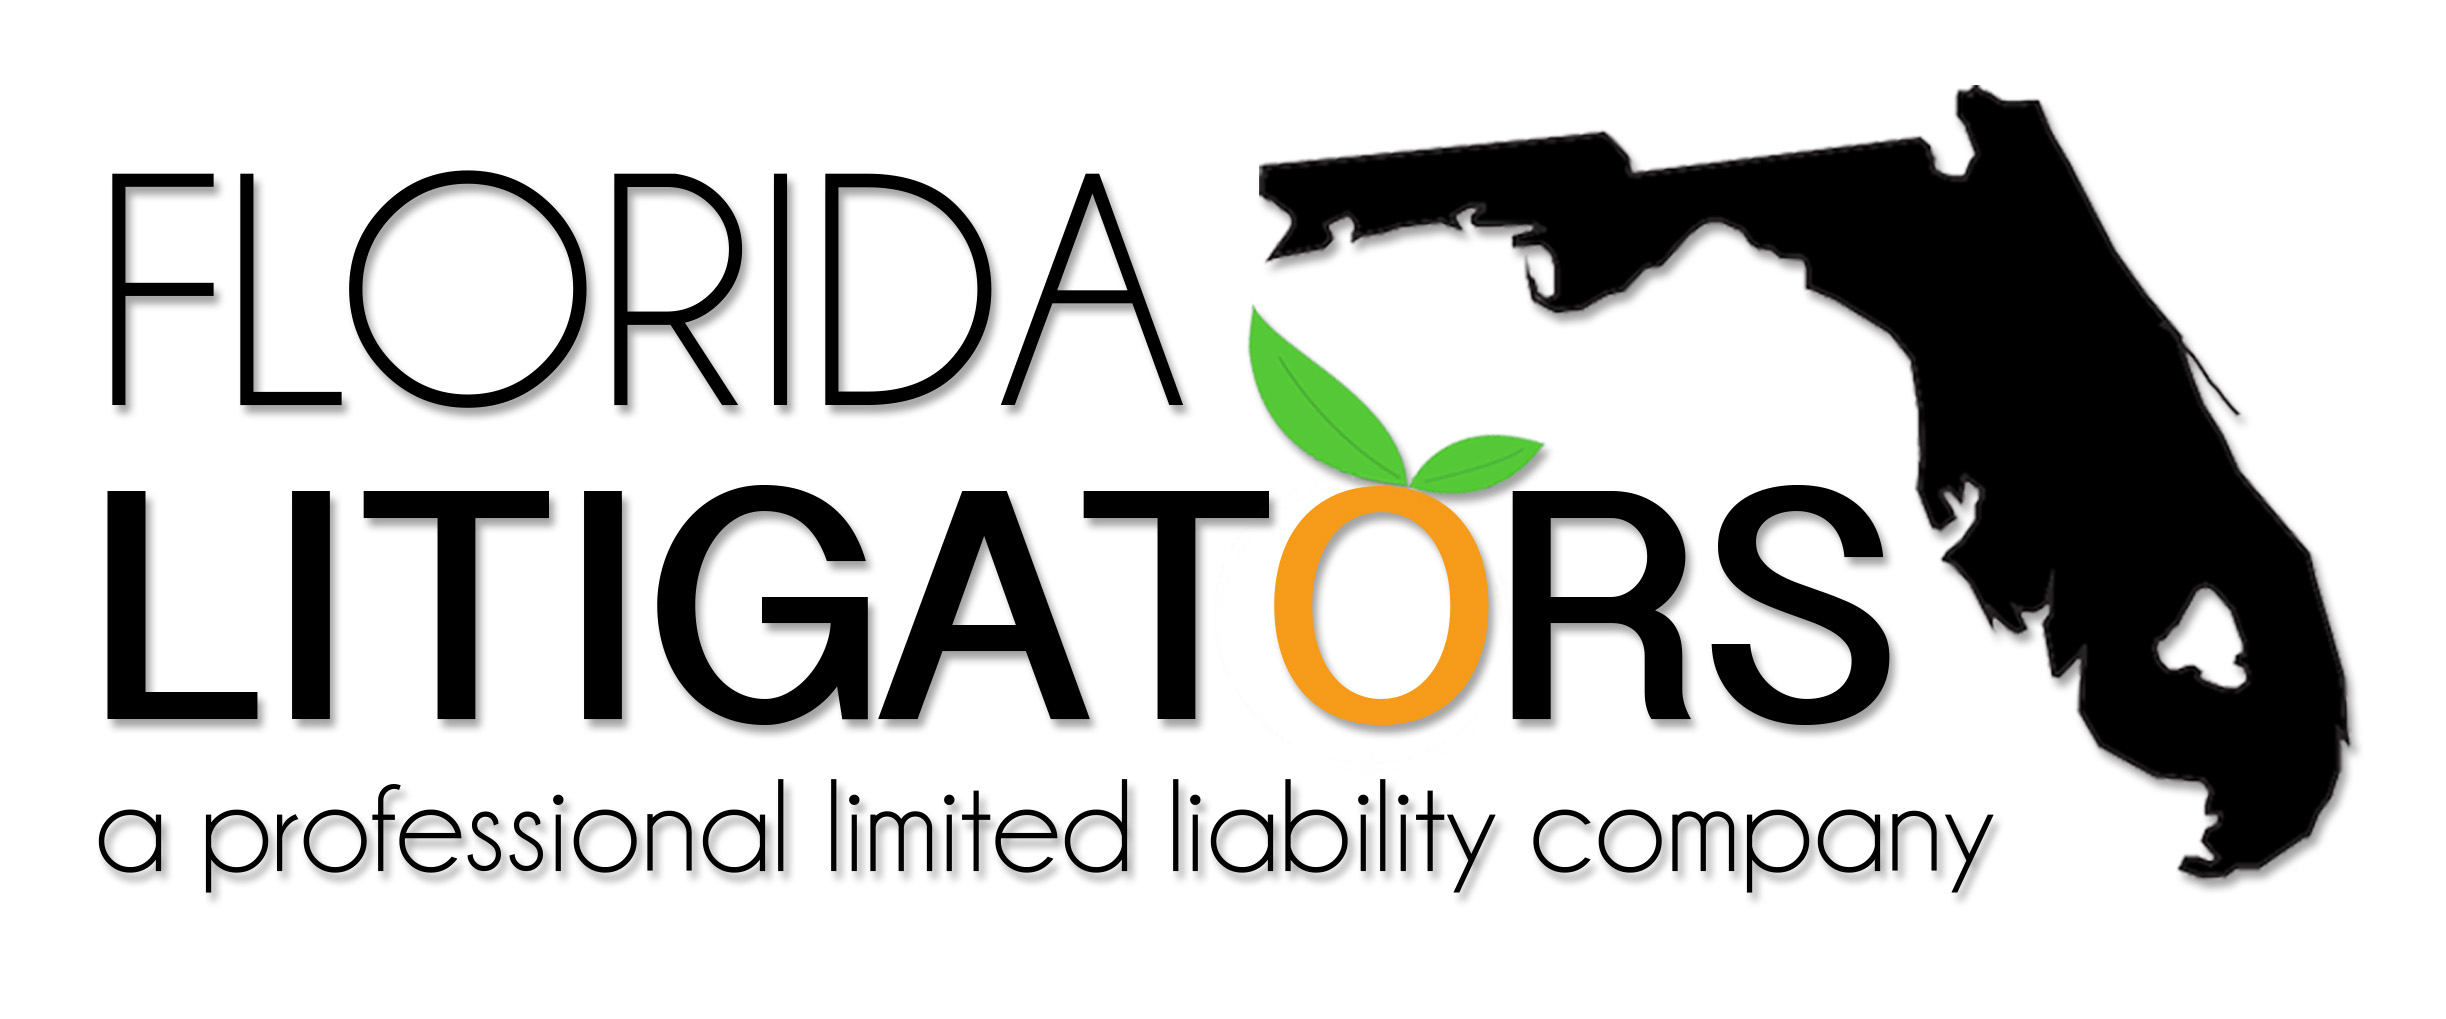 Florida Litigators PLLC